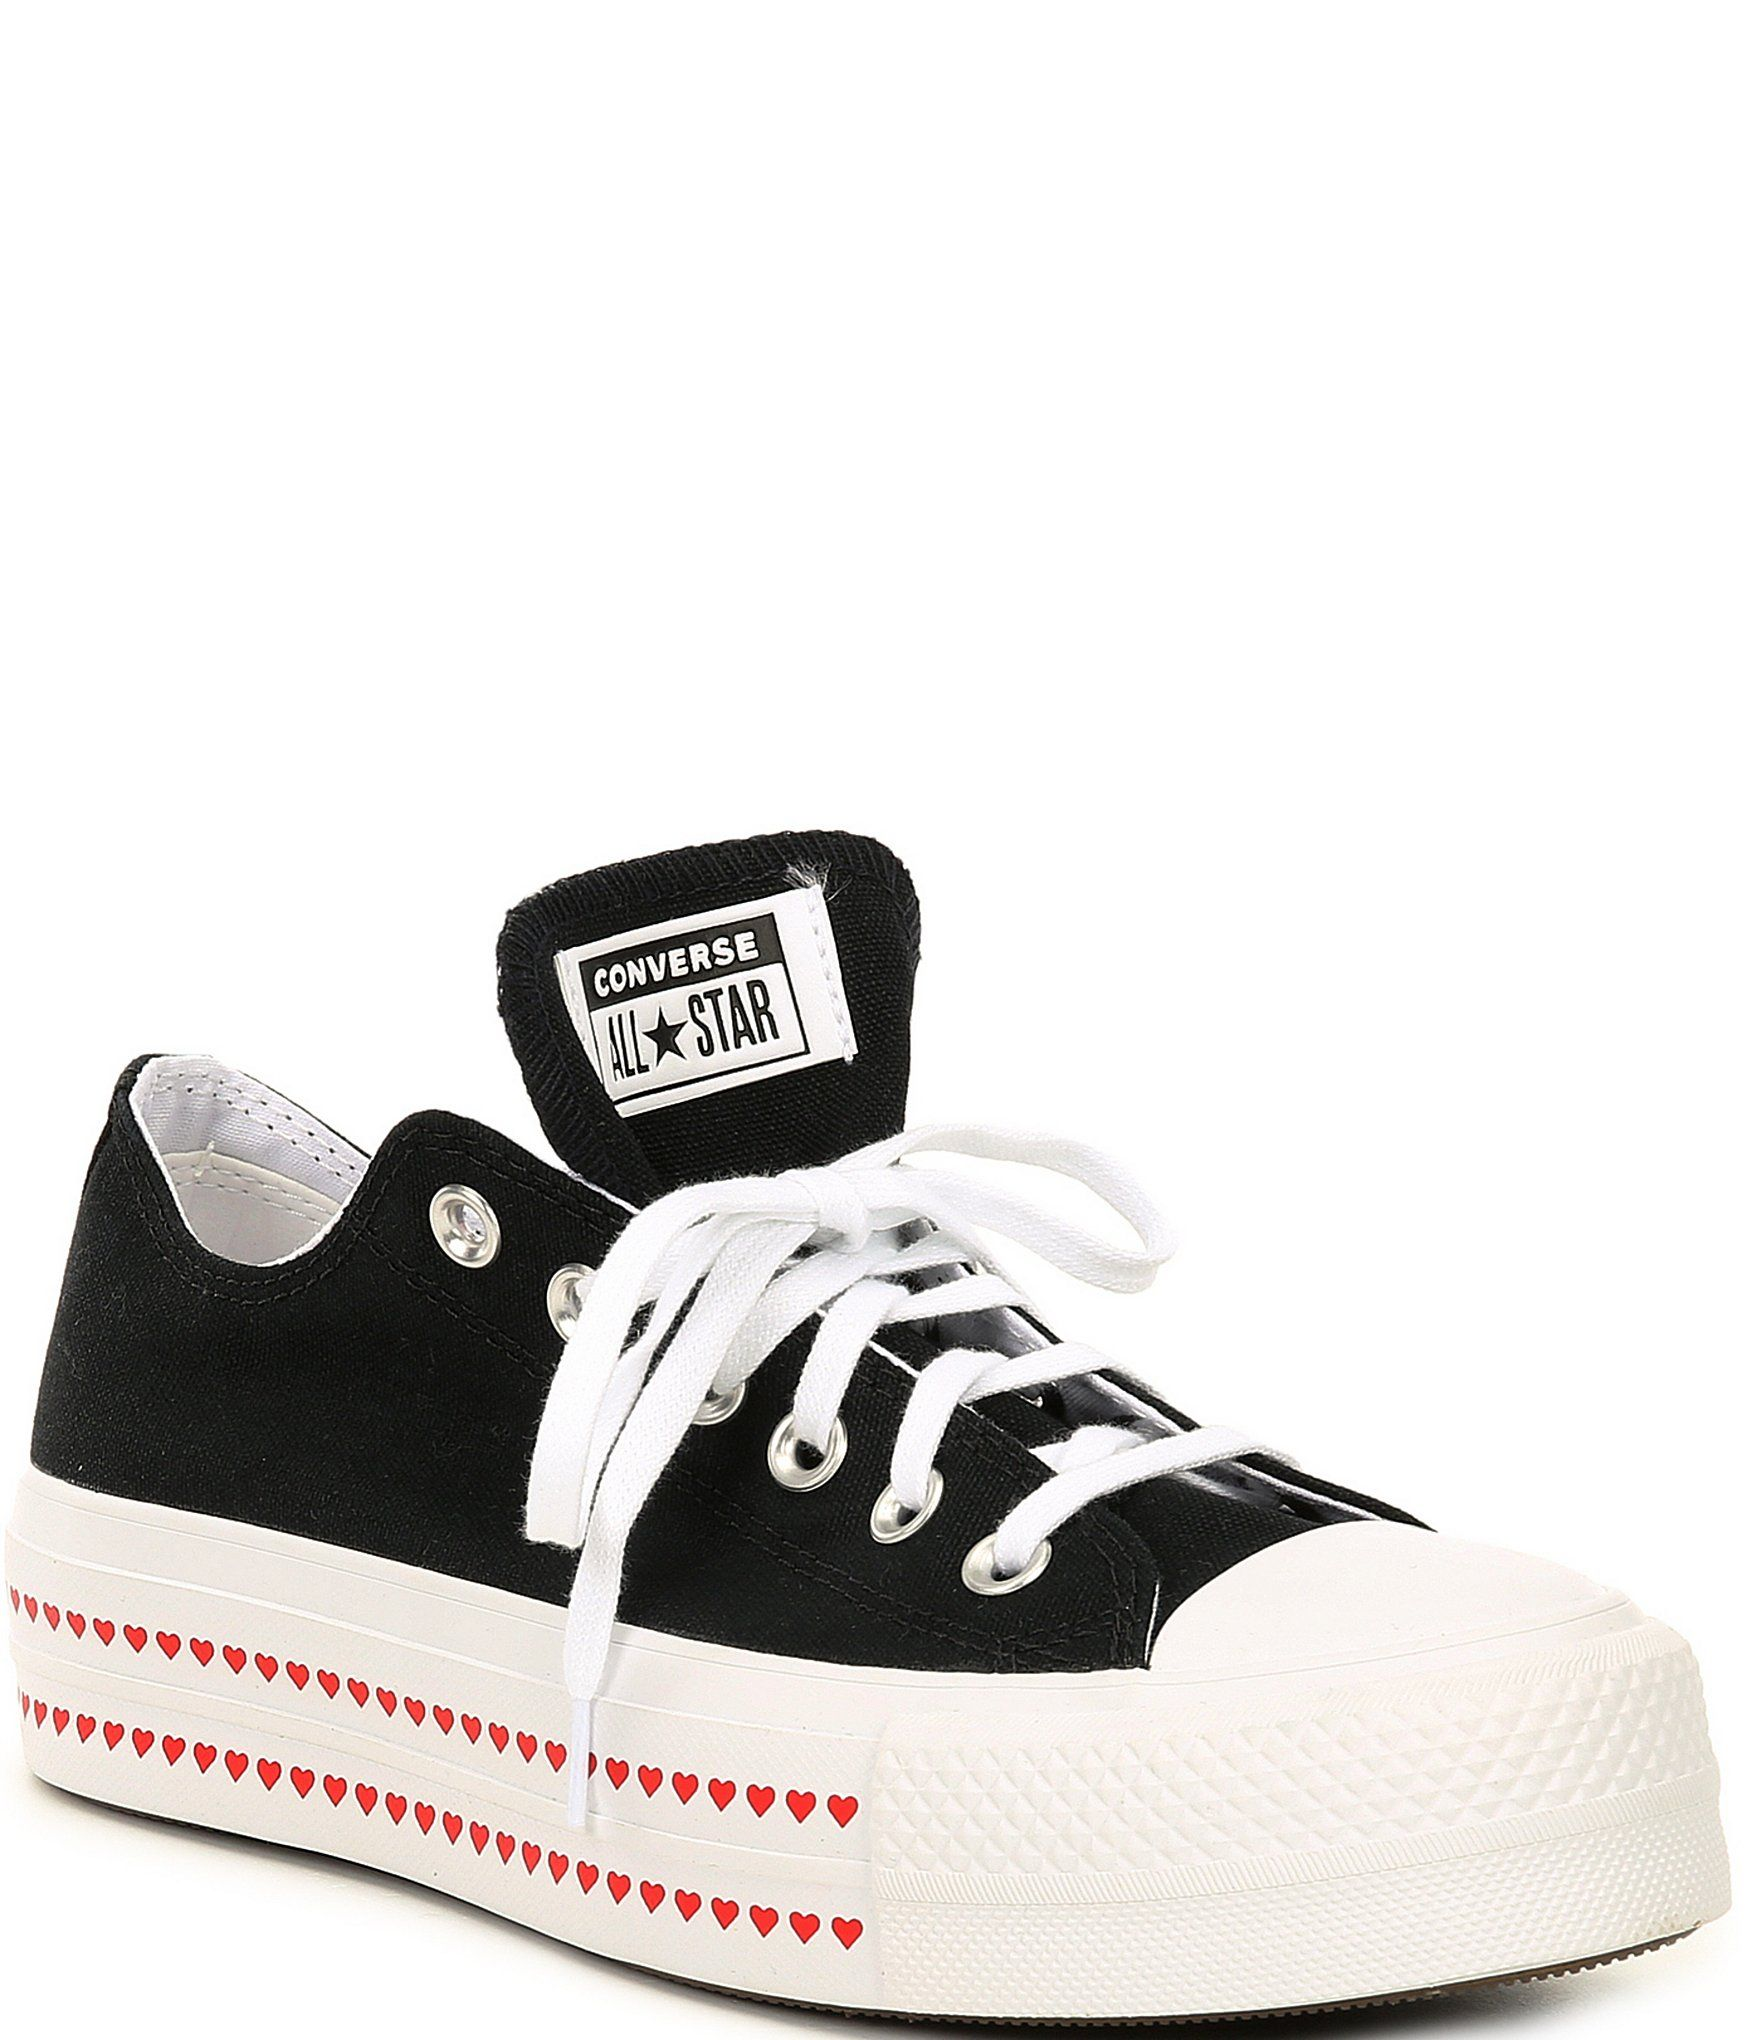 converse all star platform canvas